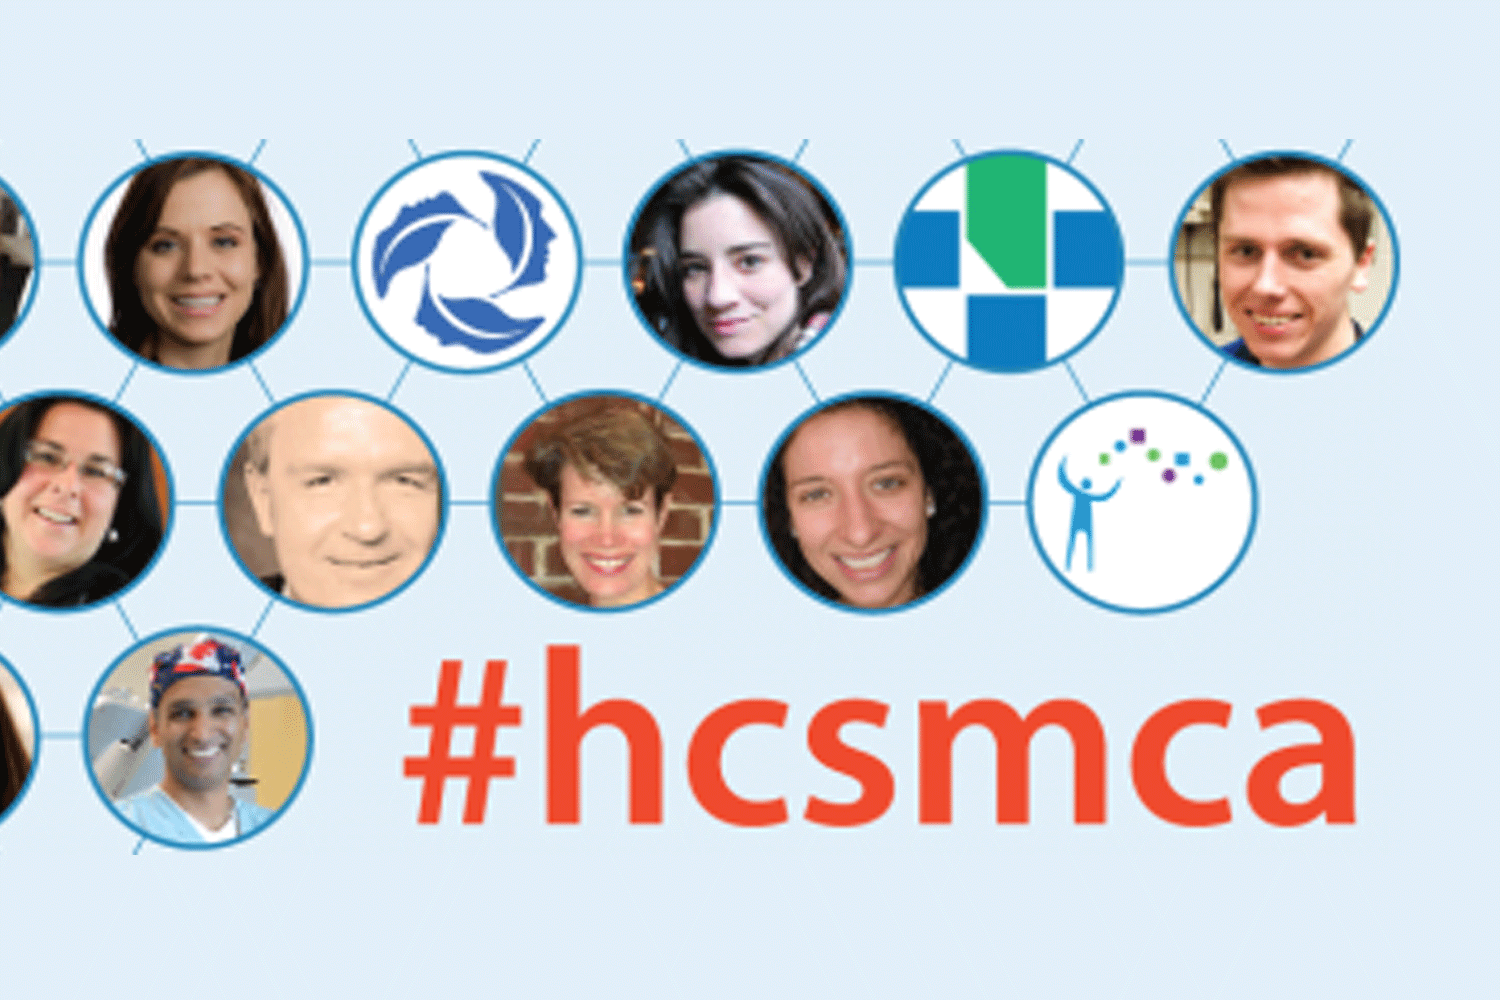 #HCSMCA: The importance of knowing your audience in healthcare